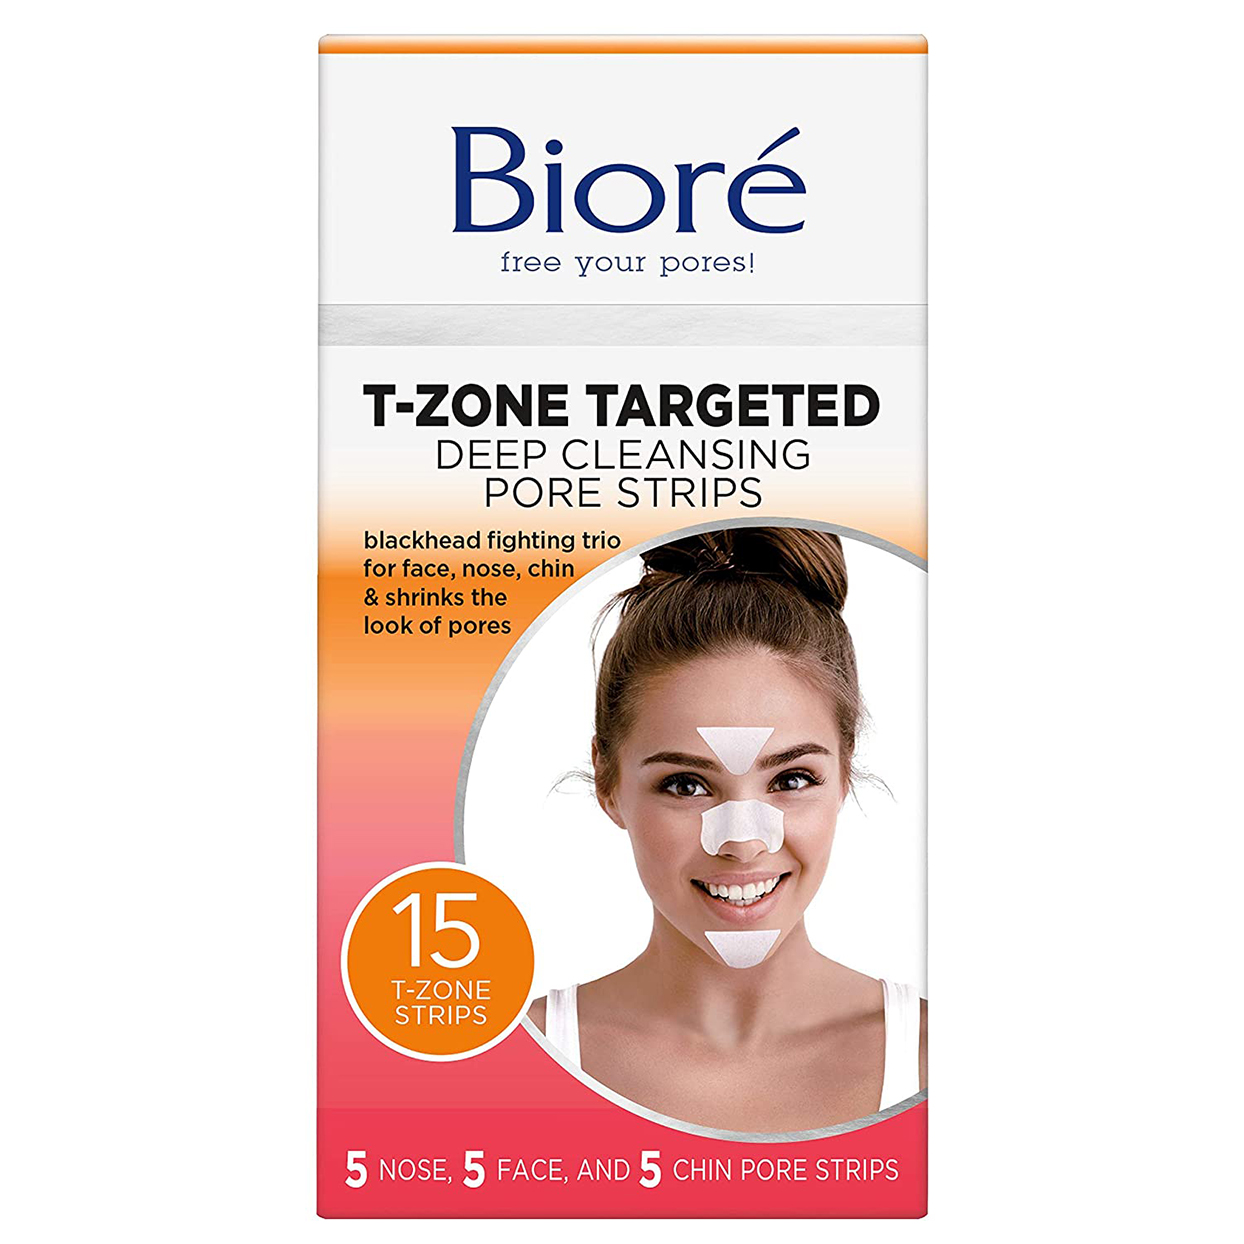 Bioré T-Zone Targeted Deep Cleansing Pore Strips,